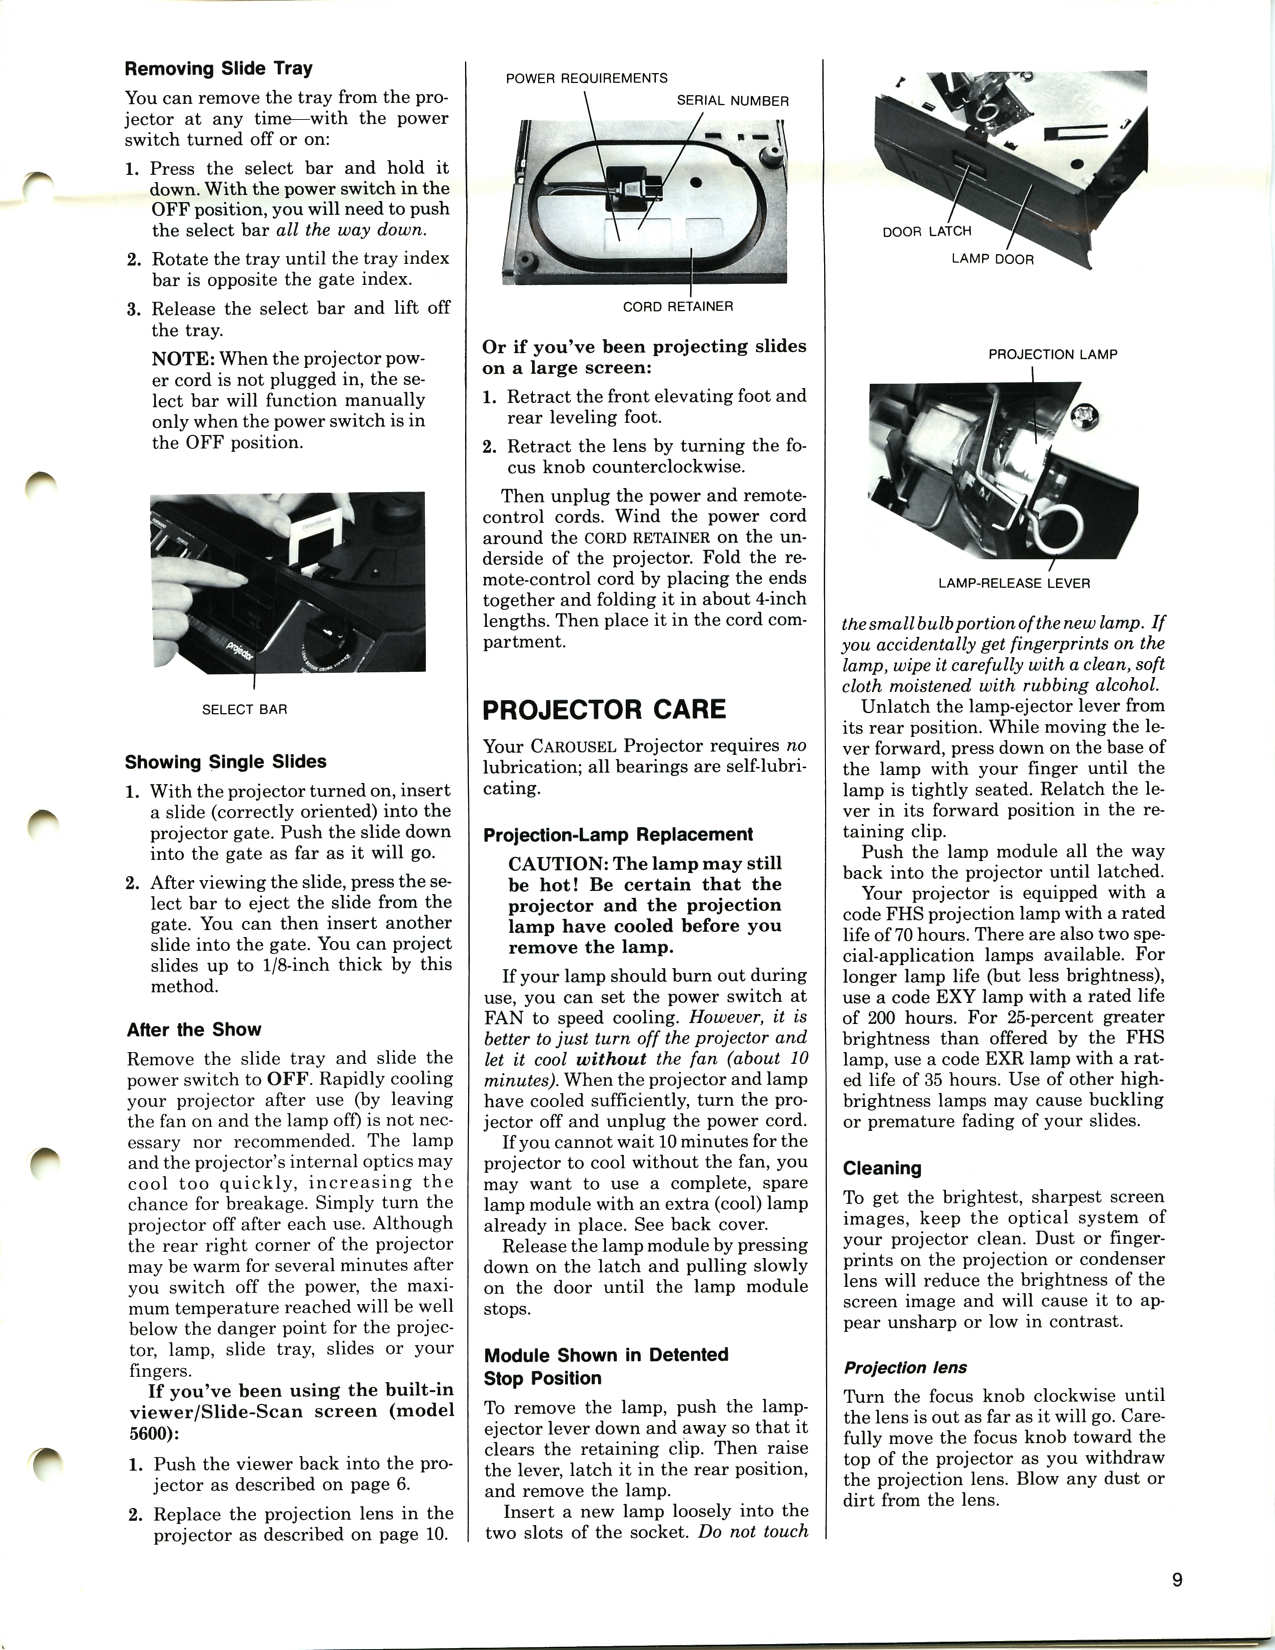 Index of /pages/images/kodak-carousel-projector-5600-4600